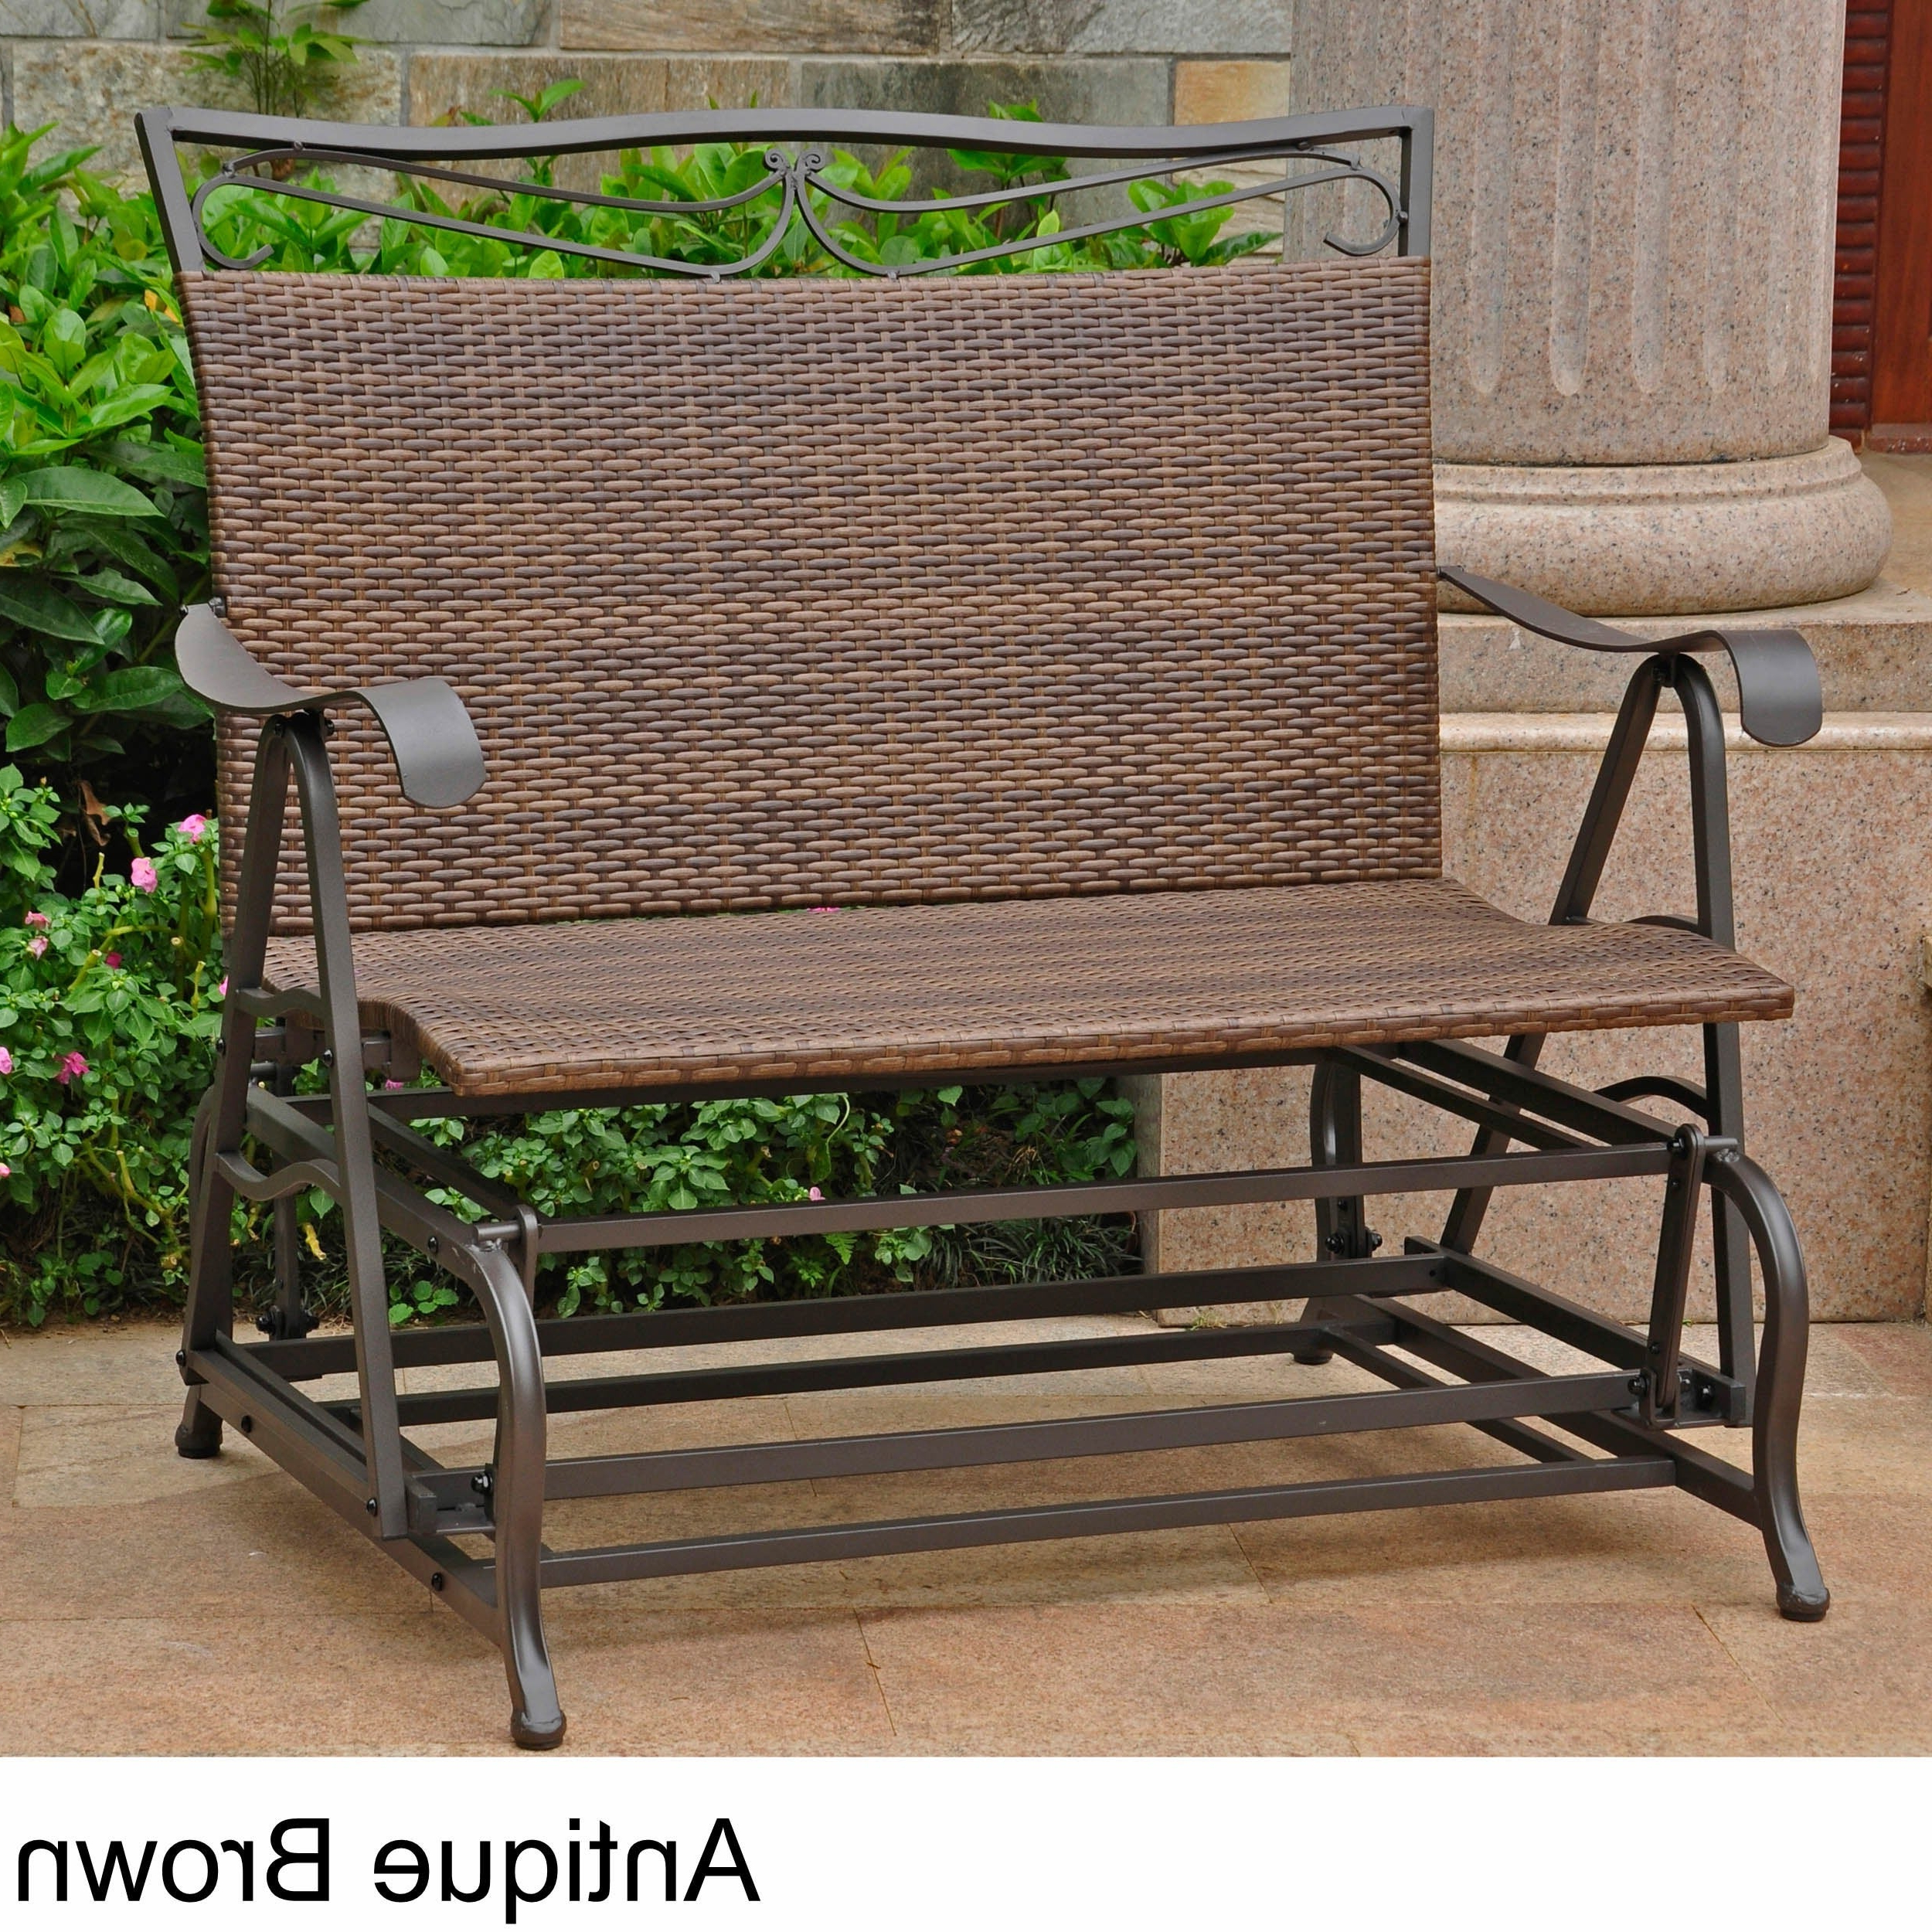 Widely Used International Caravan Valencia Resin Wicker/ Steel Frame Double Glider Chair With 1 Person Antique Black Steel Outdoor Gliders (View 14 of 30)